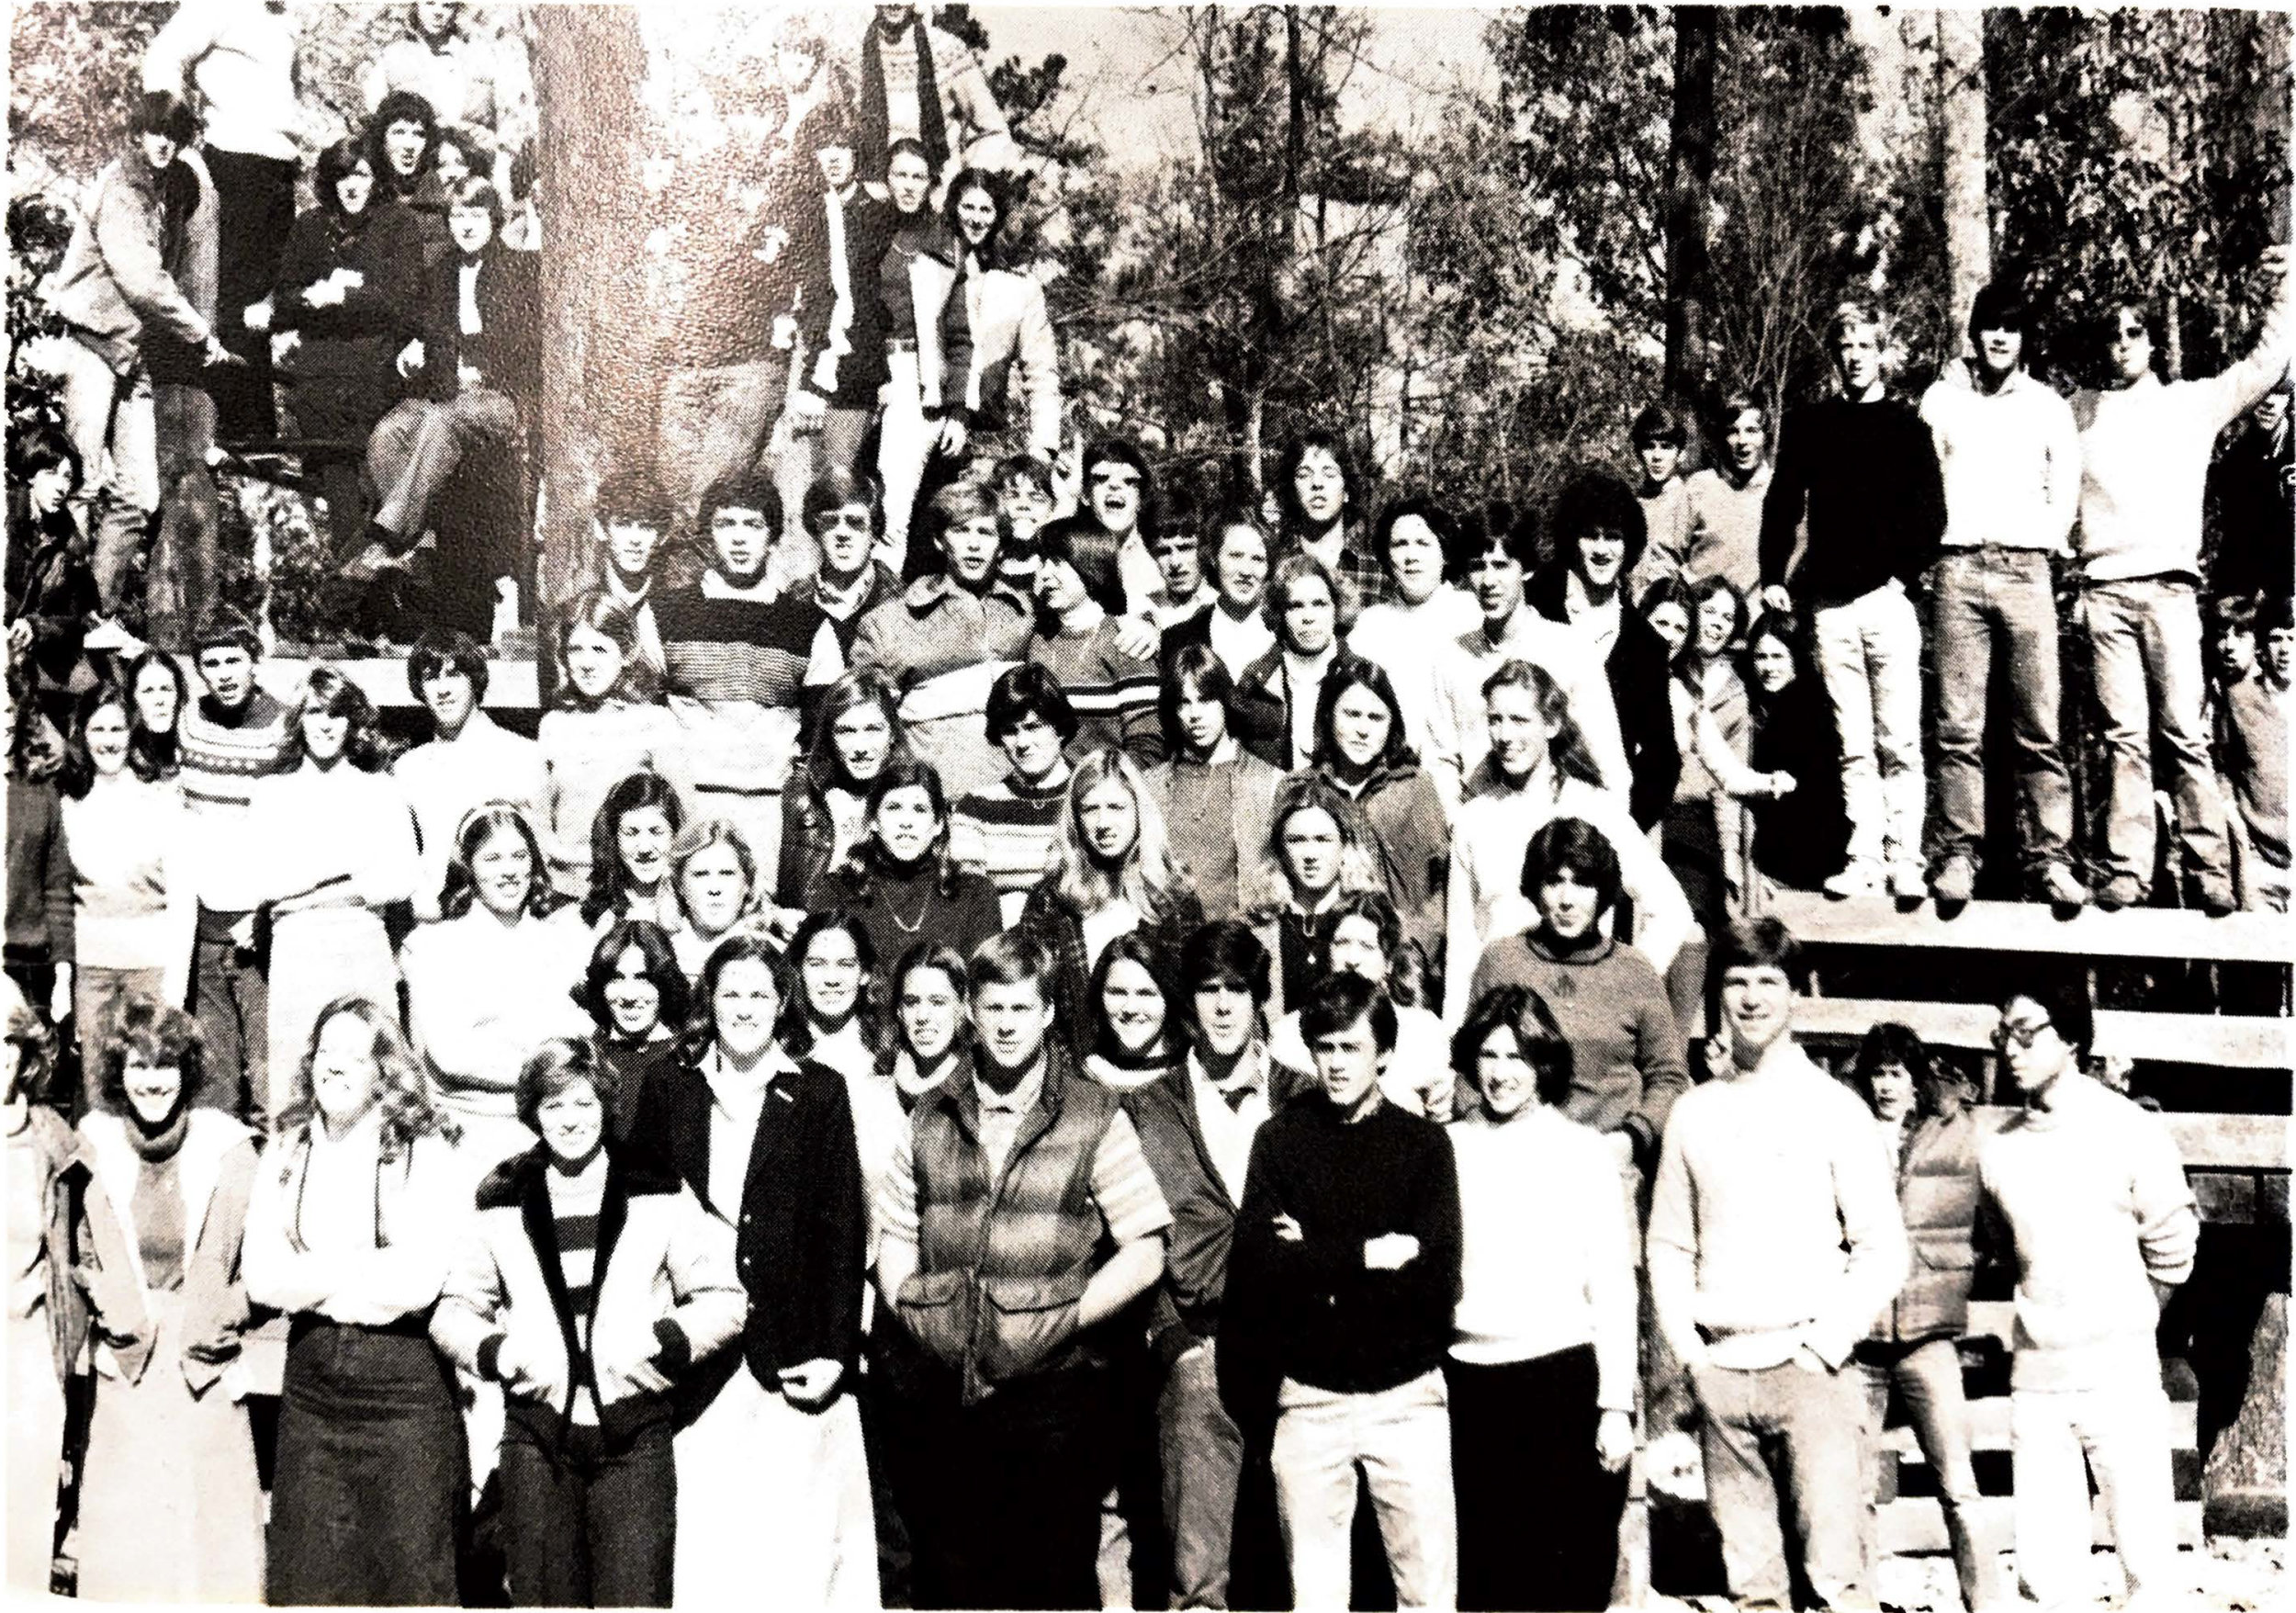 Upper School students in 1980